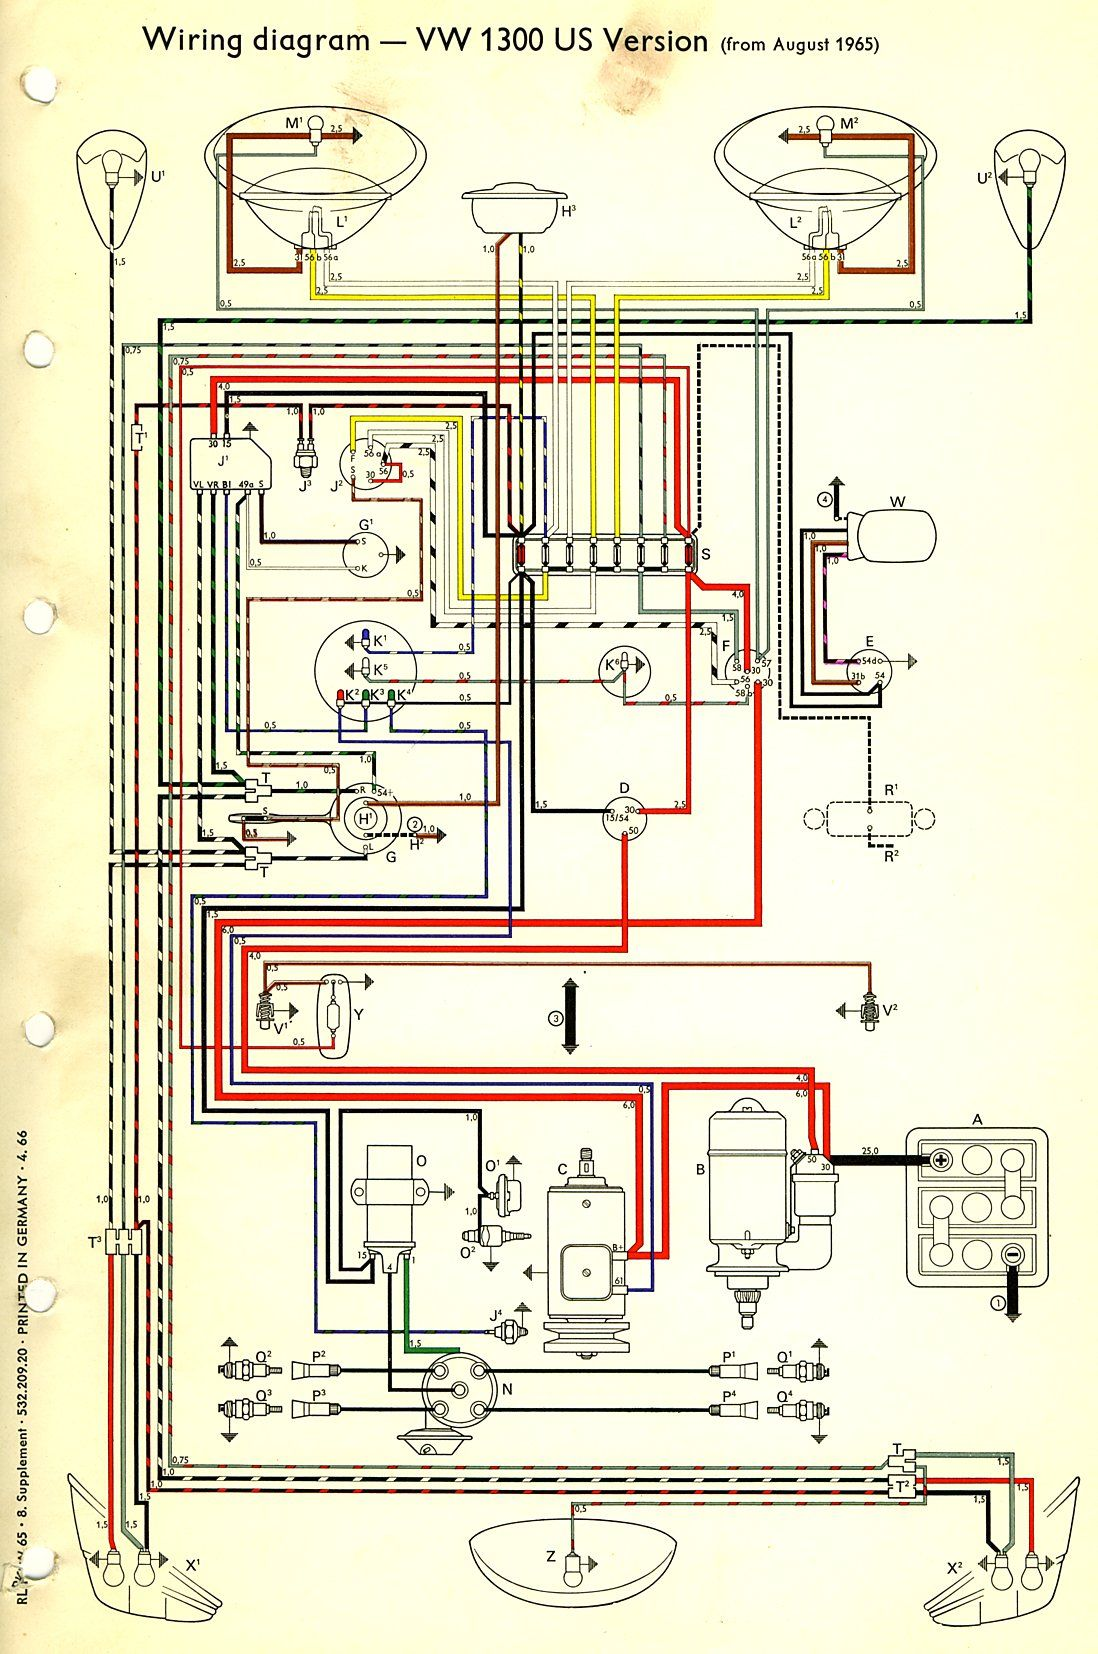 Dune Buggy Wiring Diagram - Wiring Diagram Img on dune buggy transformer, dune buggy mirrors, sand rail harness, dune buggy axles, dune buggy lights, dune buggy radiator, dune buggy fuel pressure regulator, dune buggy motor, dune buggy radio, dune buggy alternator, dune buggy muffler, dune buggy 1975, dune buggy battery box, dune buggy transmission, dune buggy shifter, dune buggy tires, dune buggy fuel pump, dune buggy switches, dune buggy antenna, dune buggy fenders,